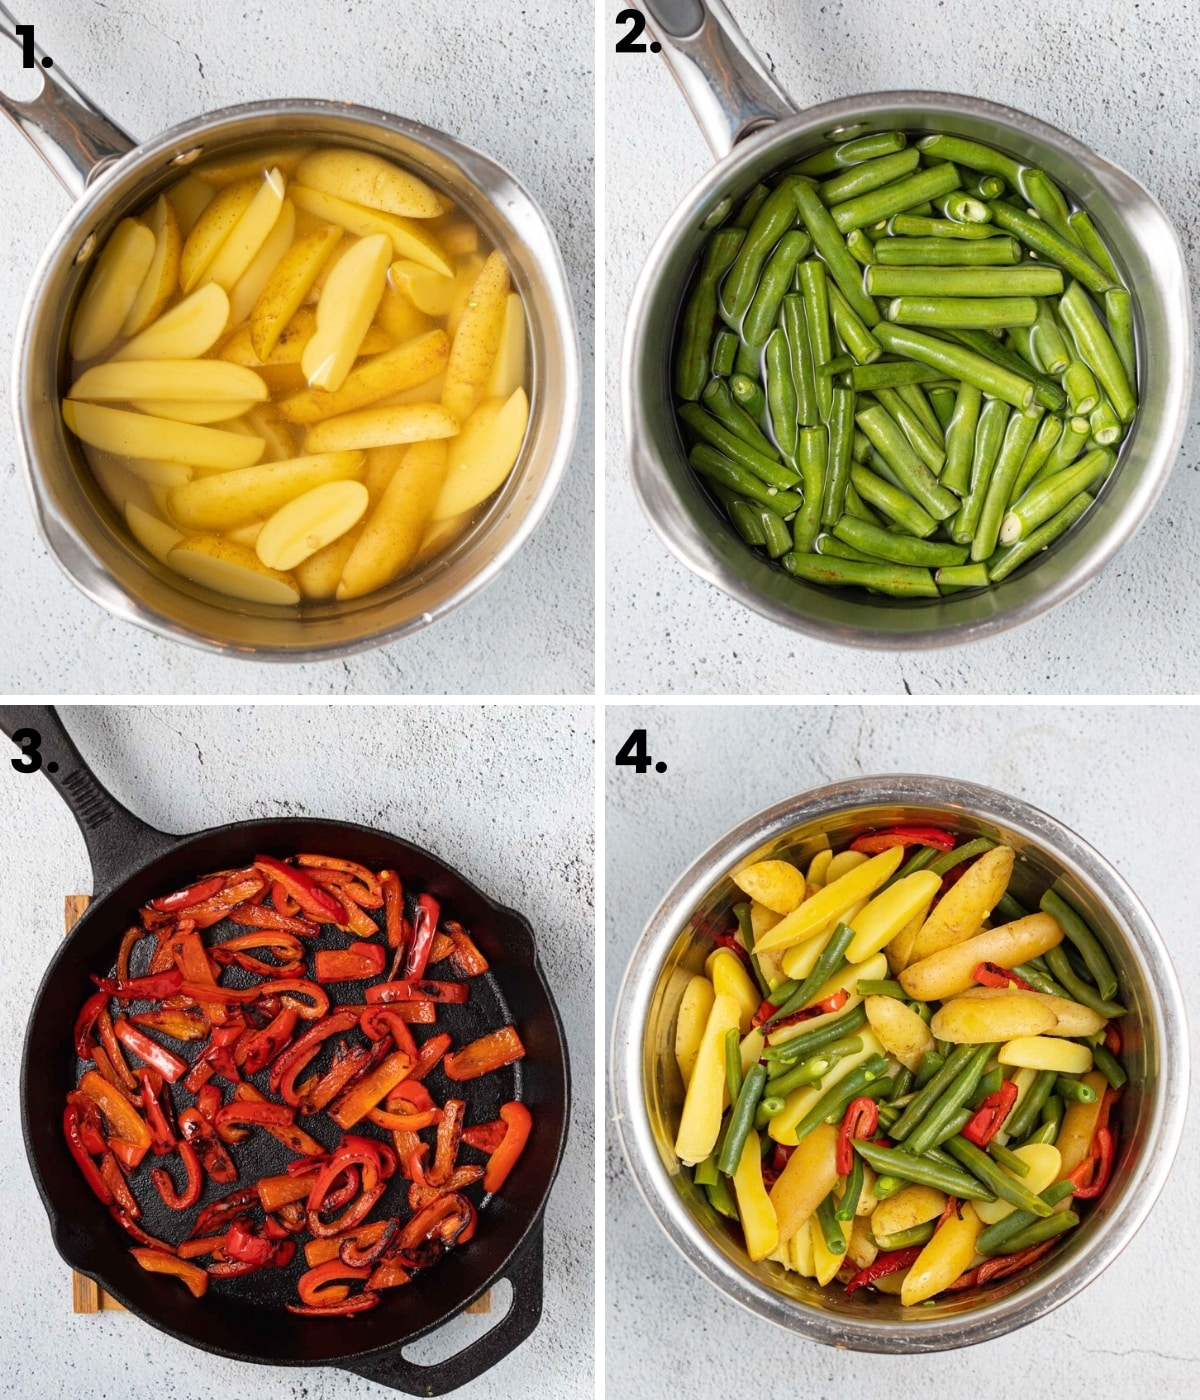 4 images: potatoes in a pan of water, green beans in a pan of water, red bell pepper slices charring in a pan, then all of them mixed up in a stainless steel bowl.